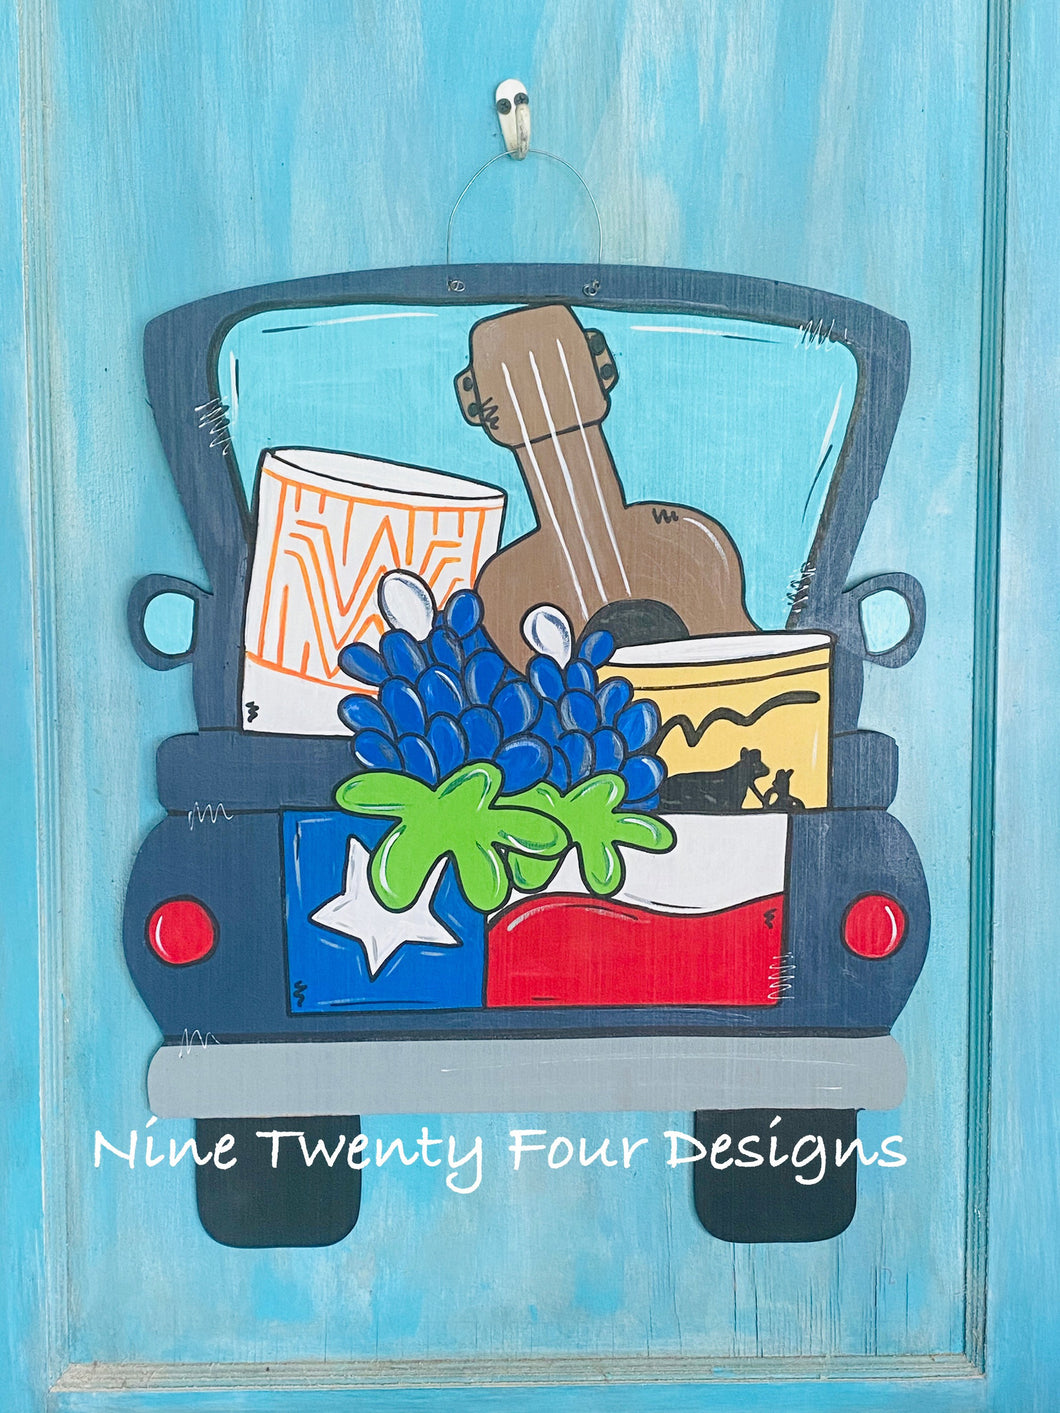 texas favorites truck, bluebonnets, texas decor, texas, texas flag, texas door hanger, spring decor, summer decor